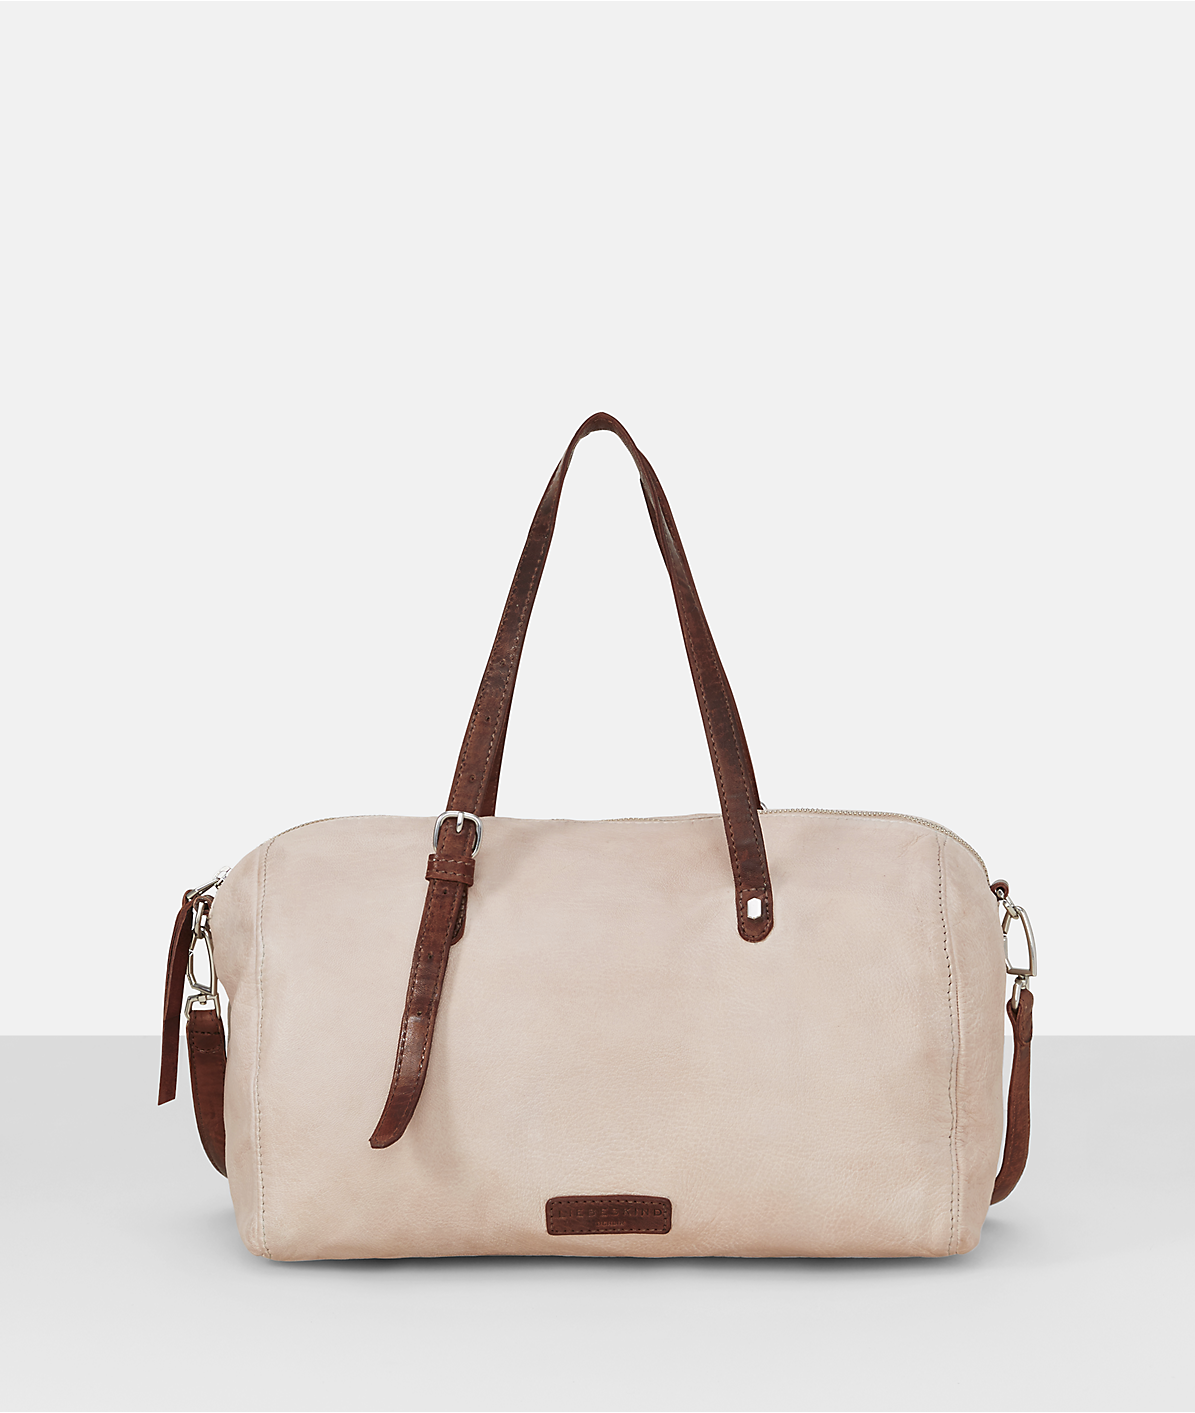 Rugari shoulder bag from liebeskind